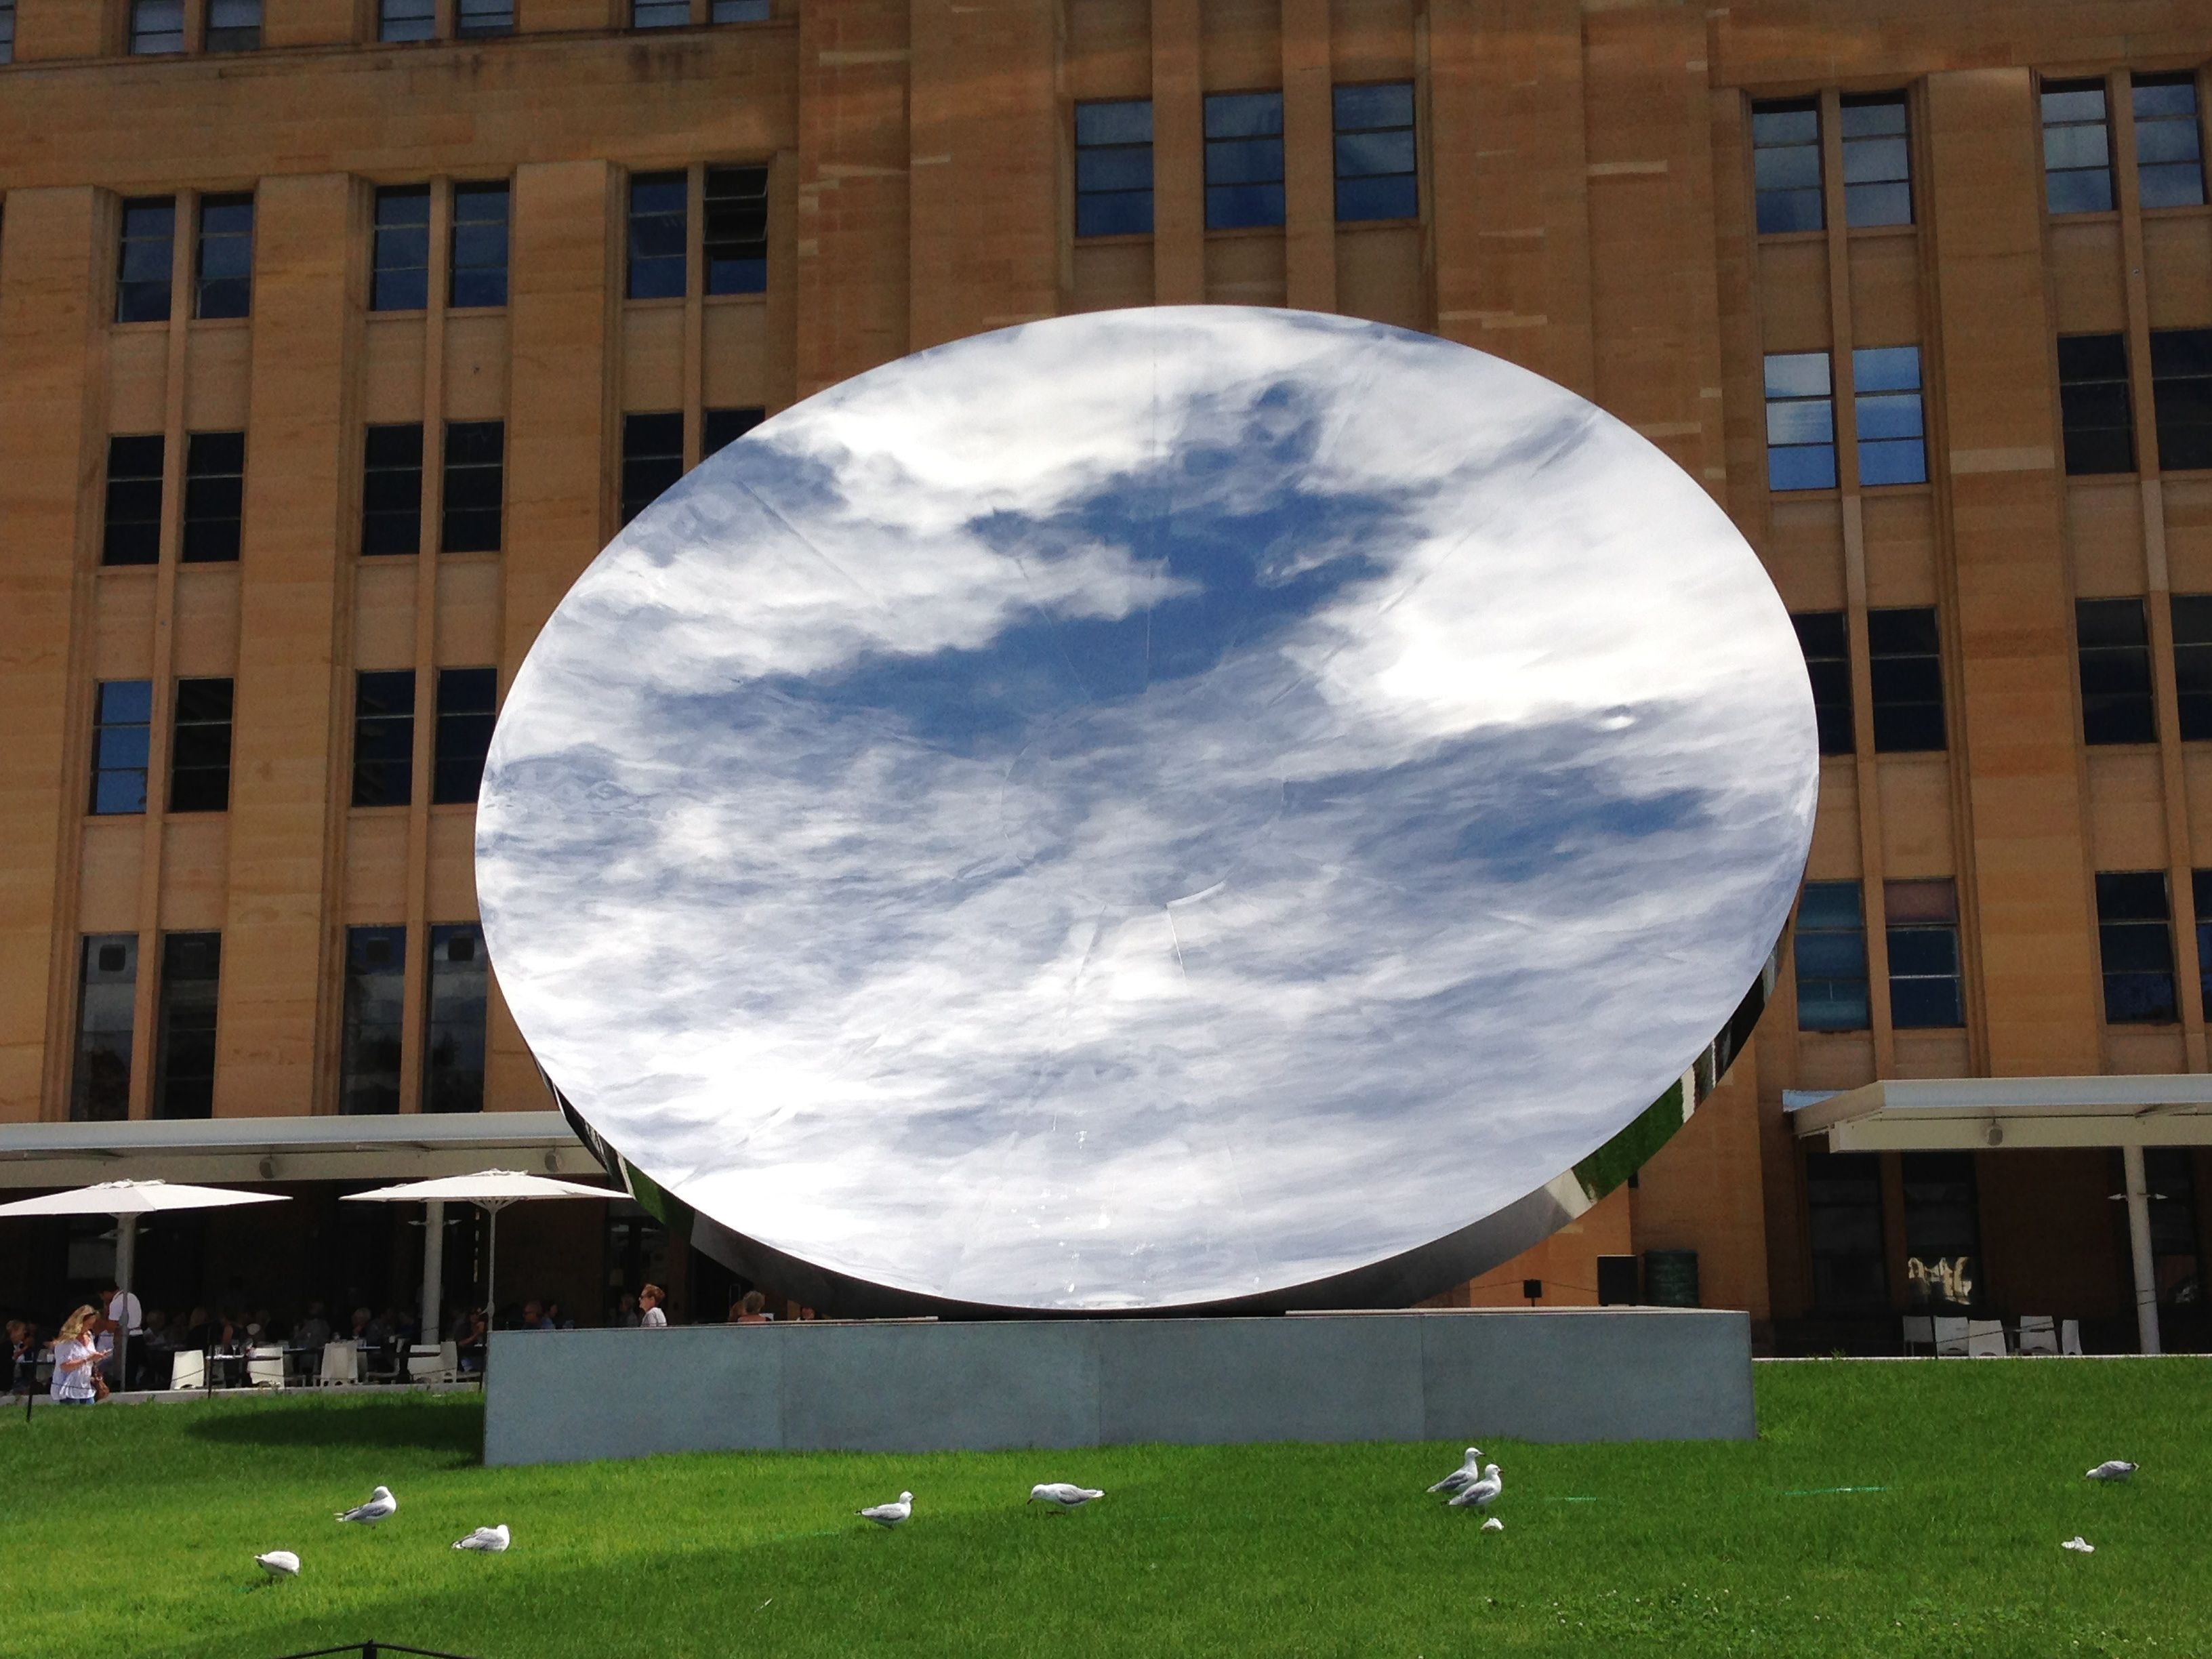 sky mirror1 (1) anish kapoor